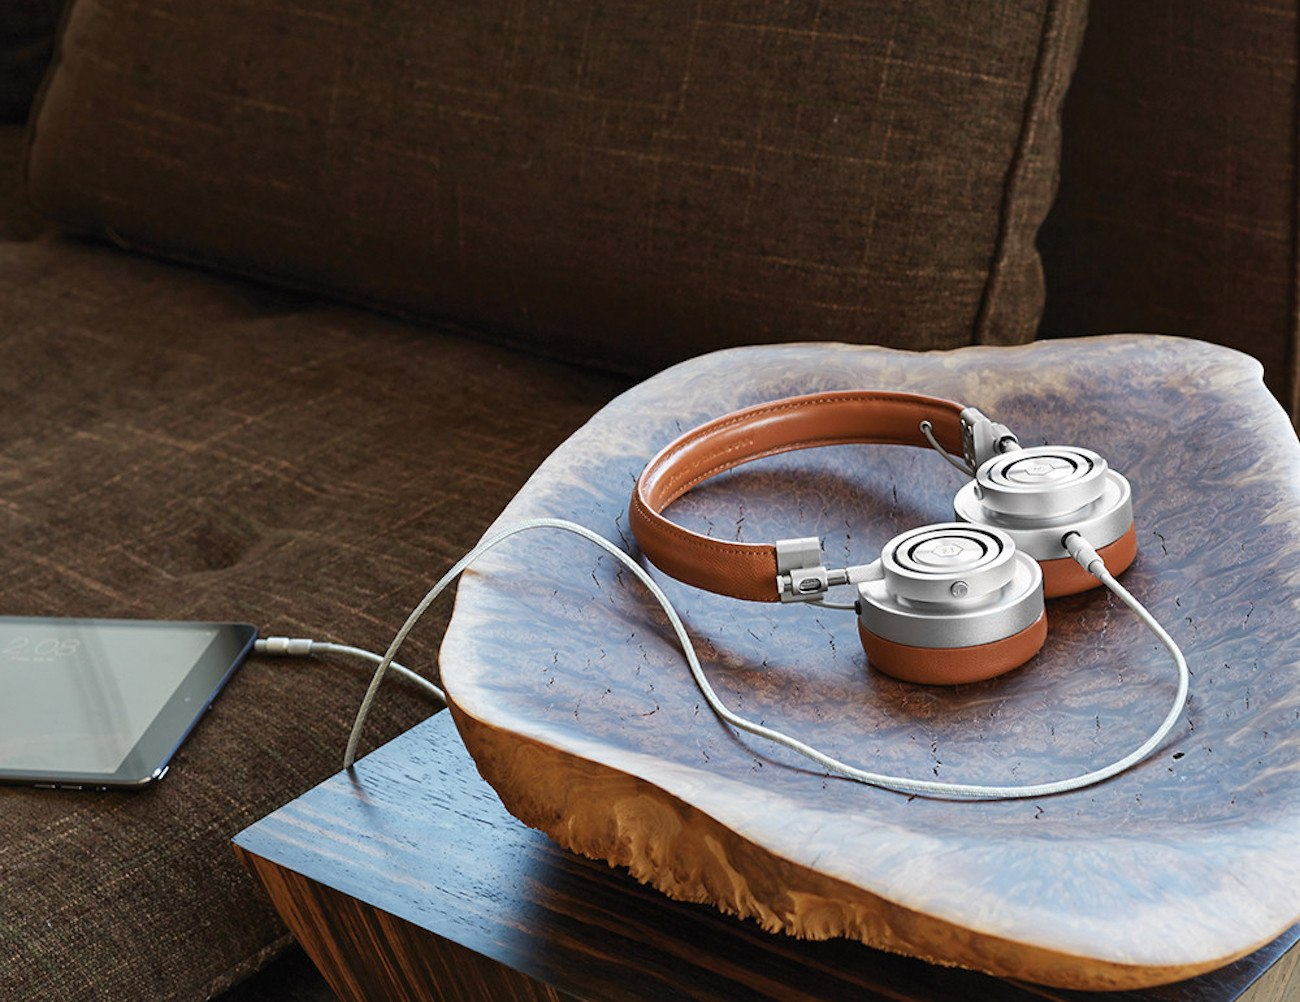 Master & Dynamic MH30 On-Ear Headphones